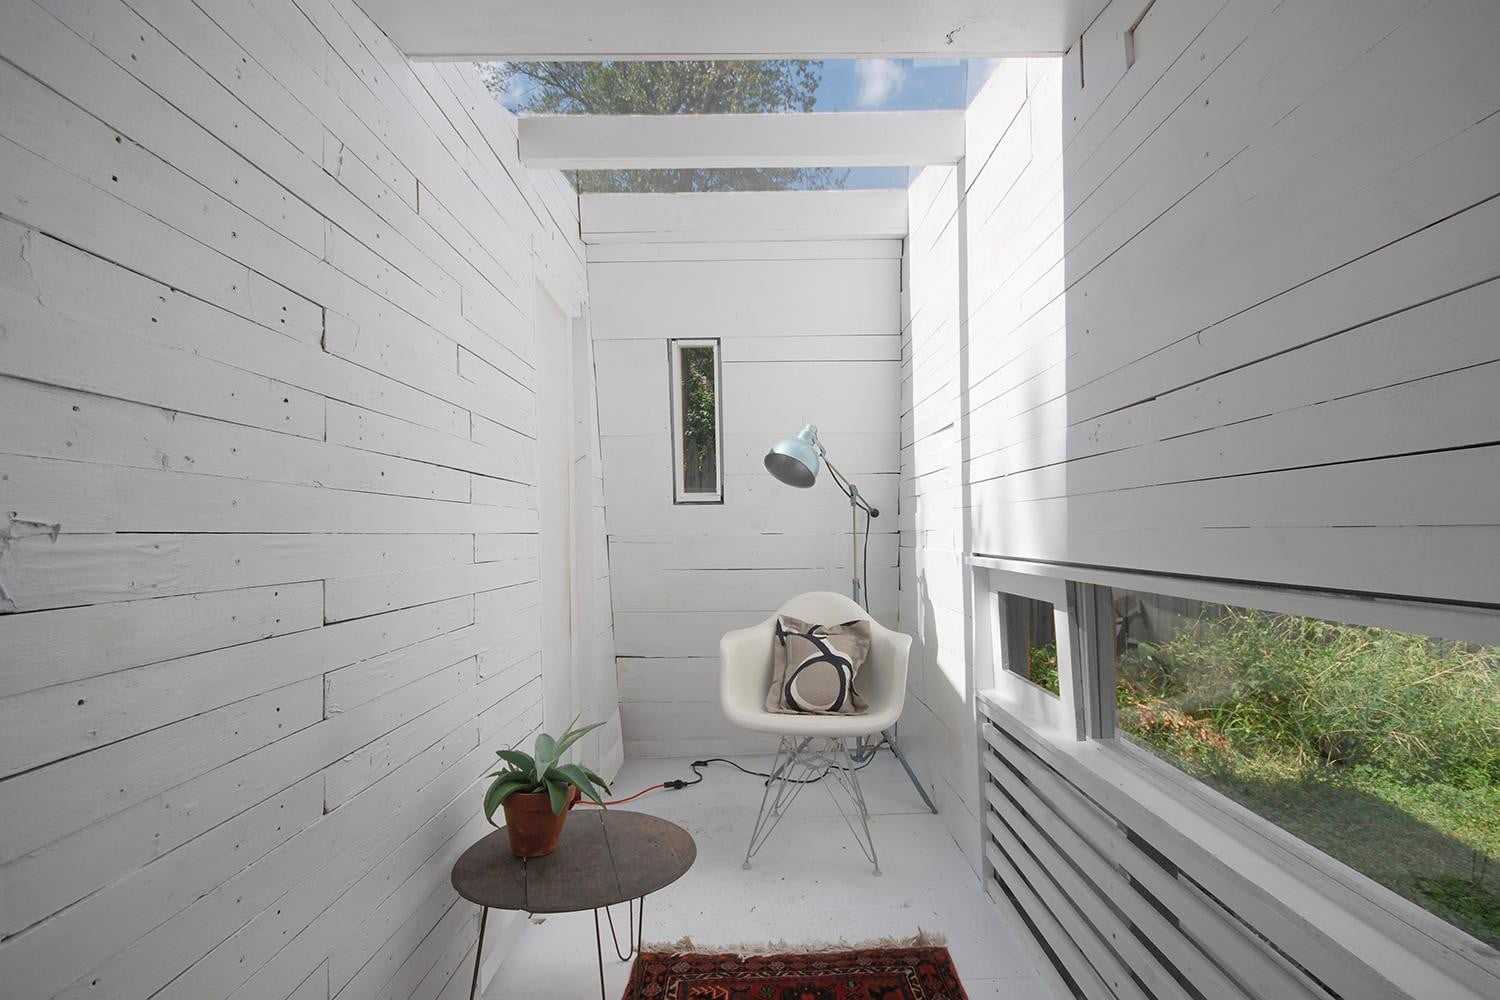 retreat from society and relax in these idyllic cabins around the world brooklyn garden studio 9